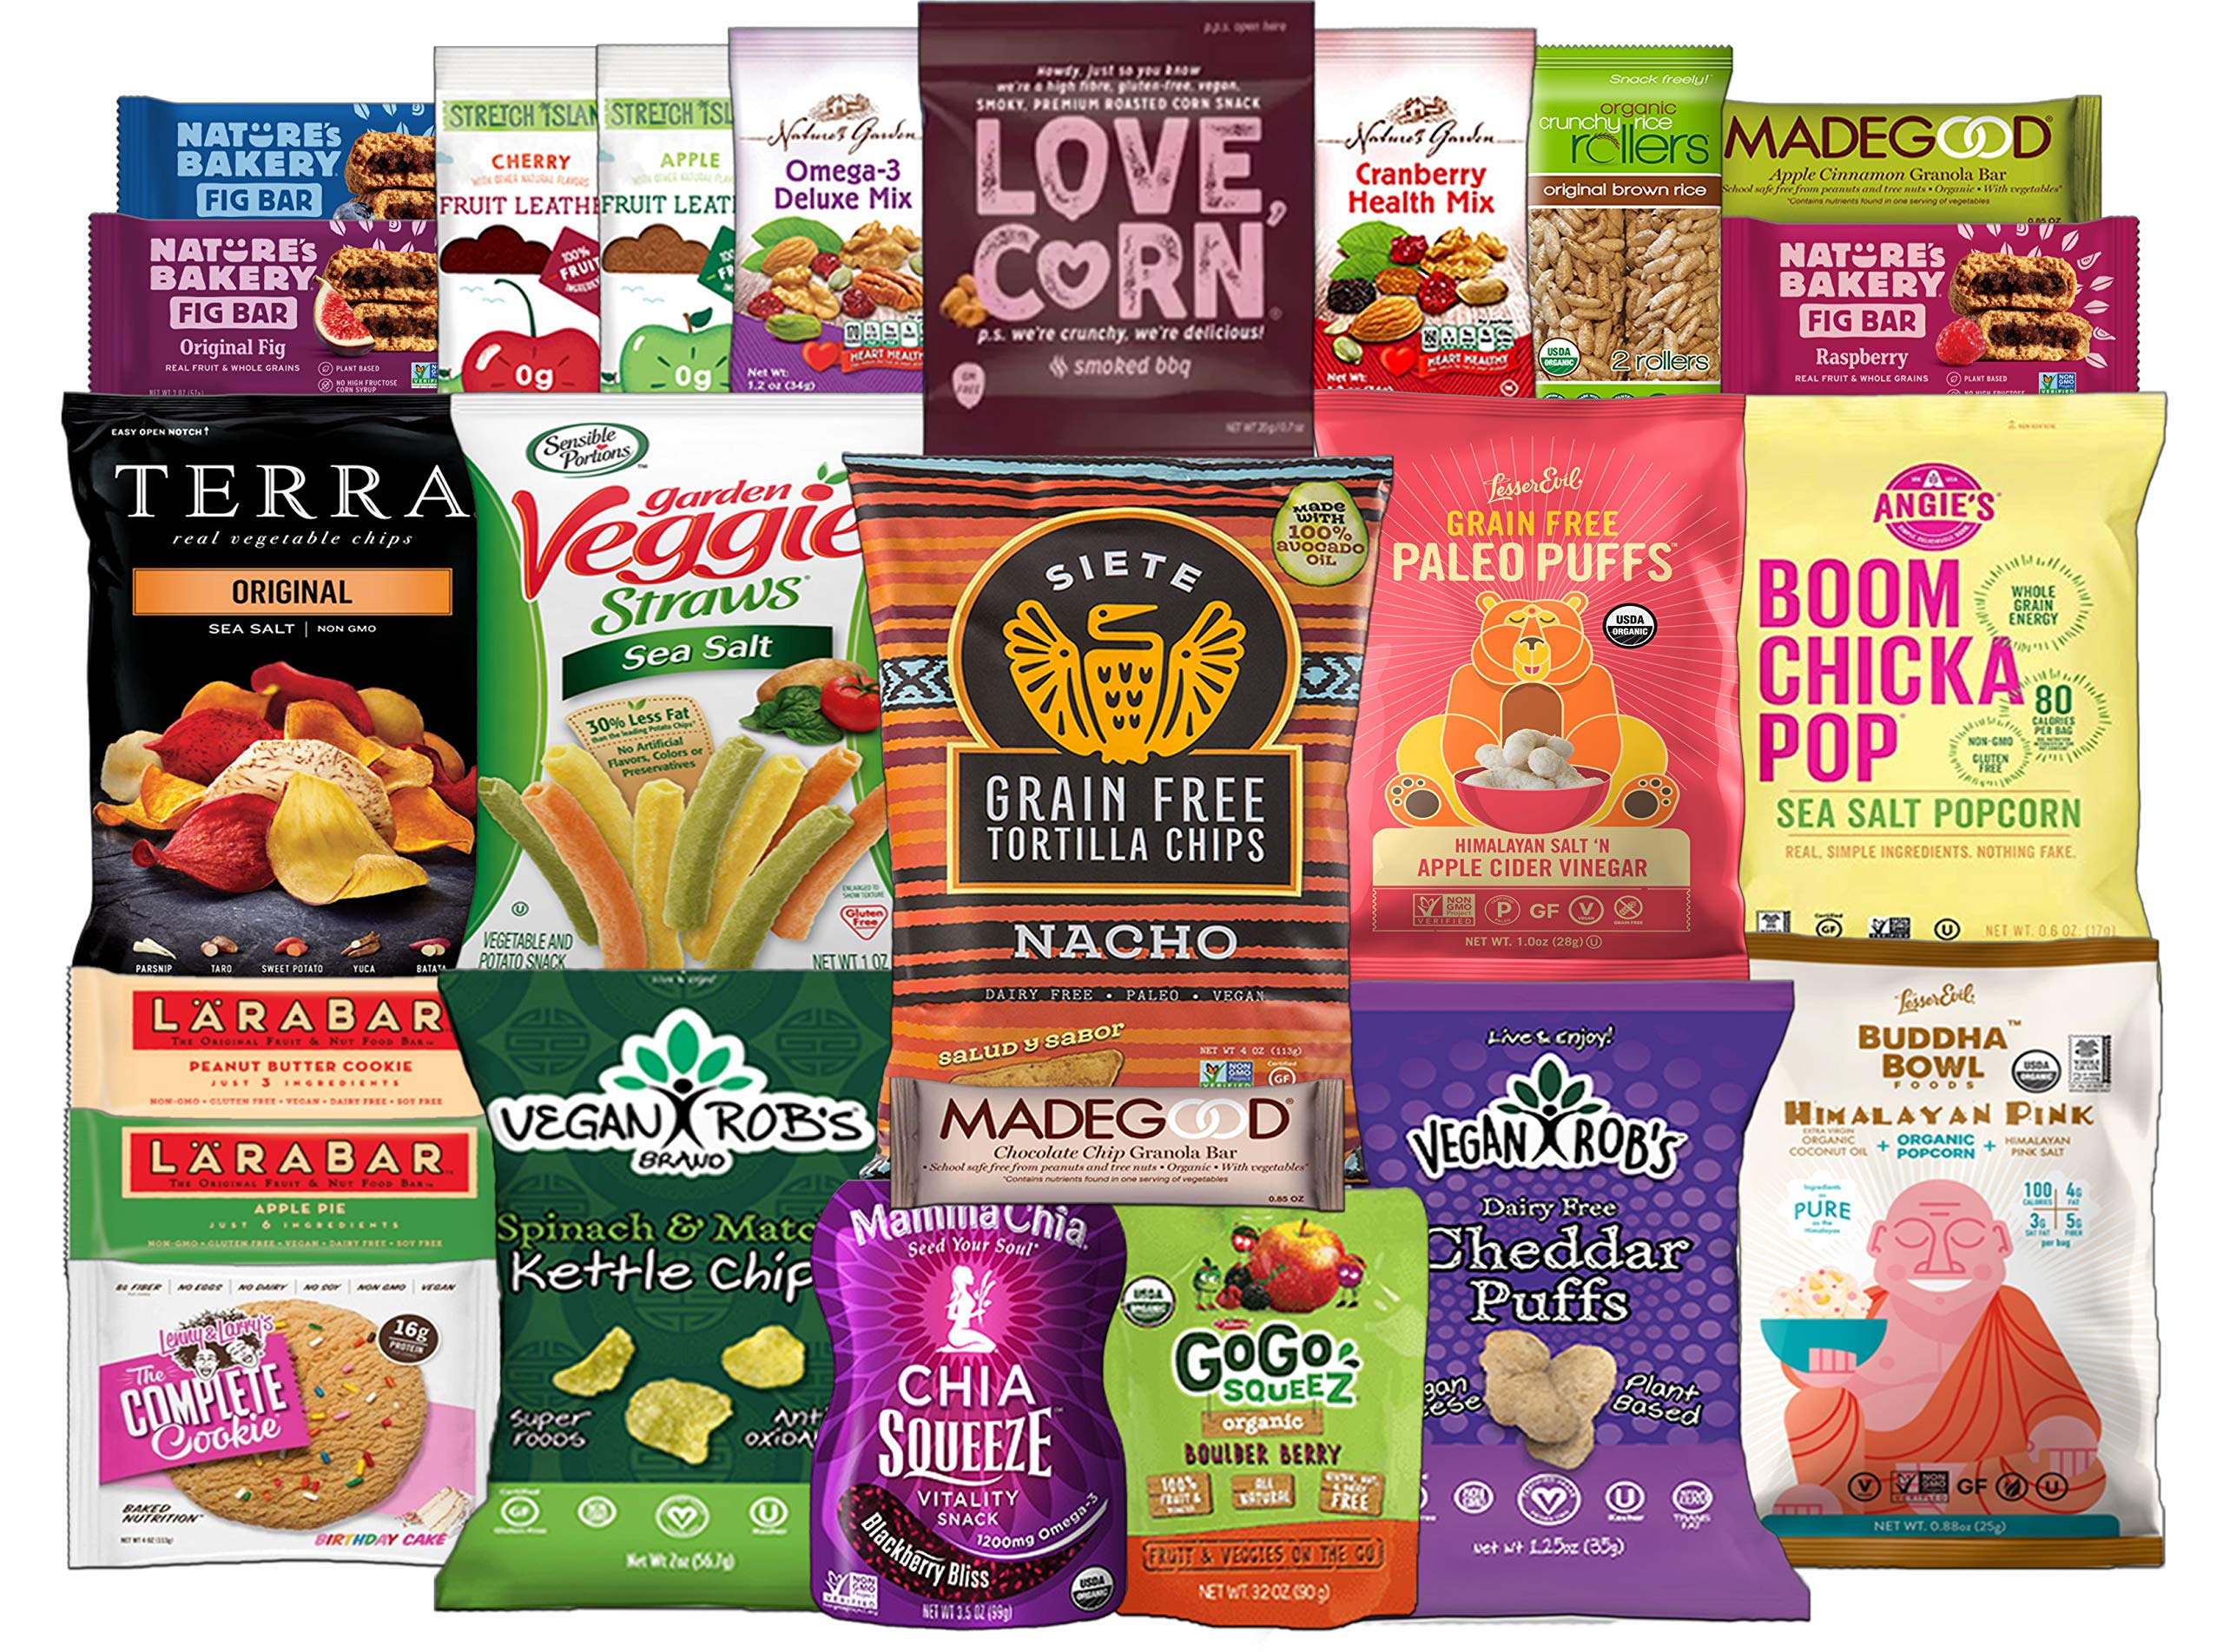 Healthy Vegan Snack Assortment Care Package - Popcorn, Chips, Puffs, Nuts, Bars, Fruit Snacks (24 Count) by Custom Treats